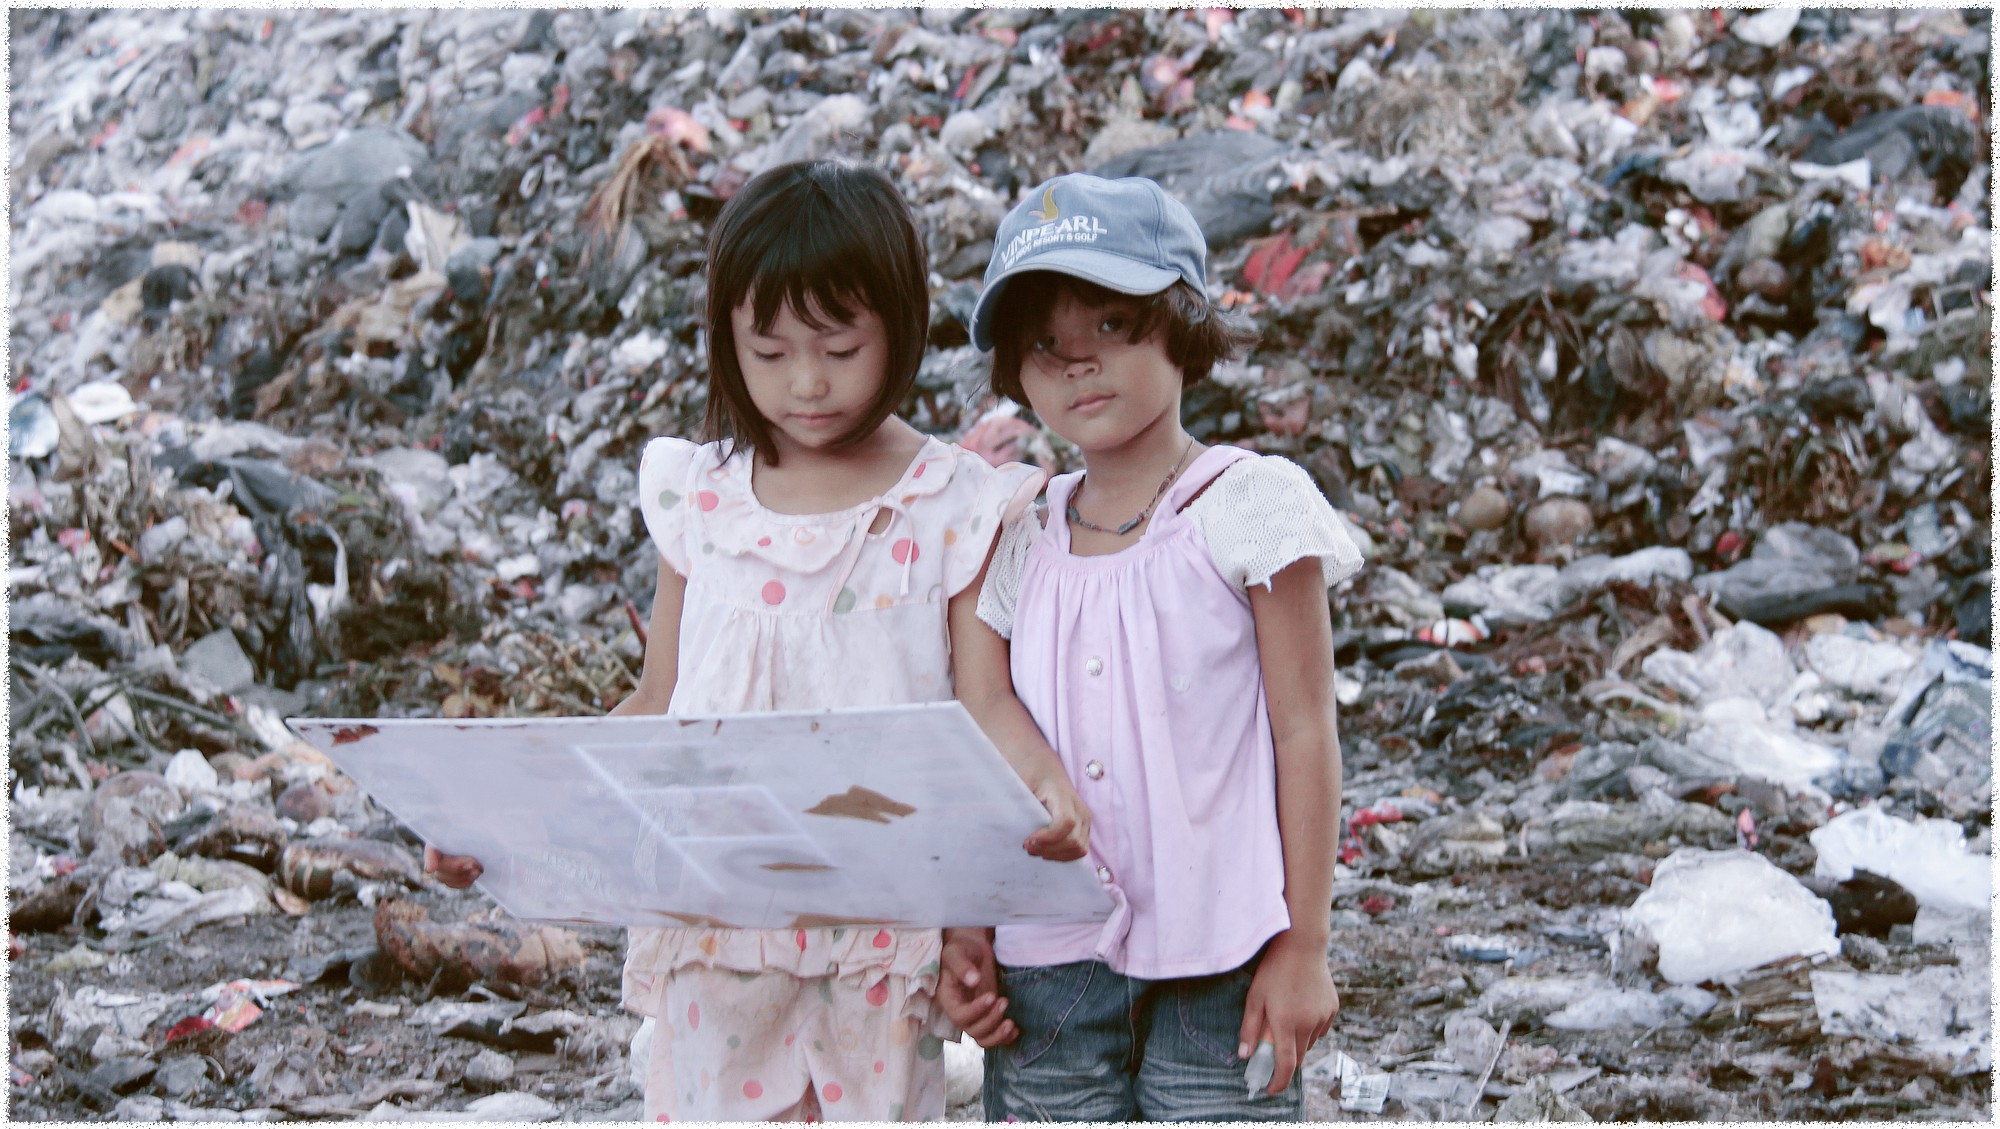 Many children now live in makeshift camp sites around trash dumps on Phu Quoc Island, off southern Vietnam, as their parents eke out their living here. Photo: Tuoi Tre